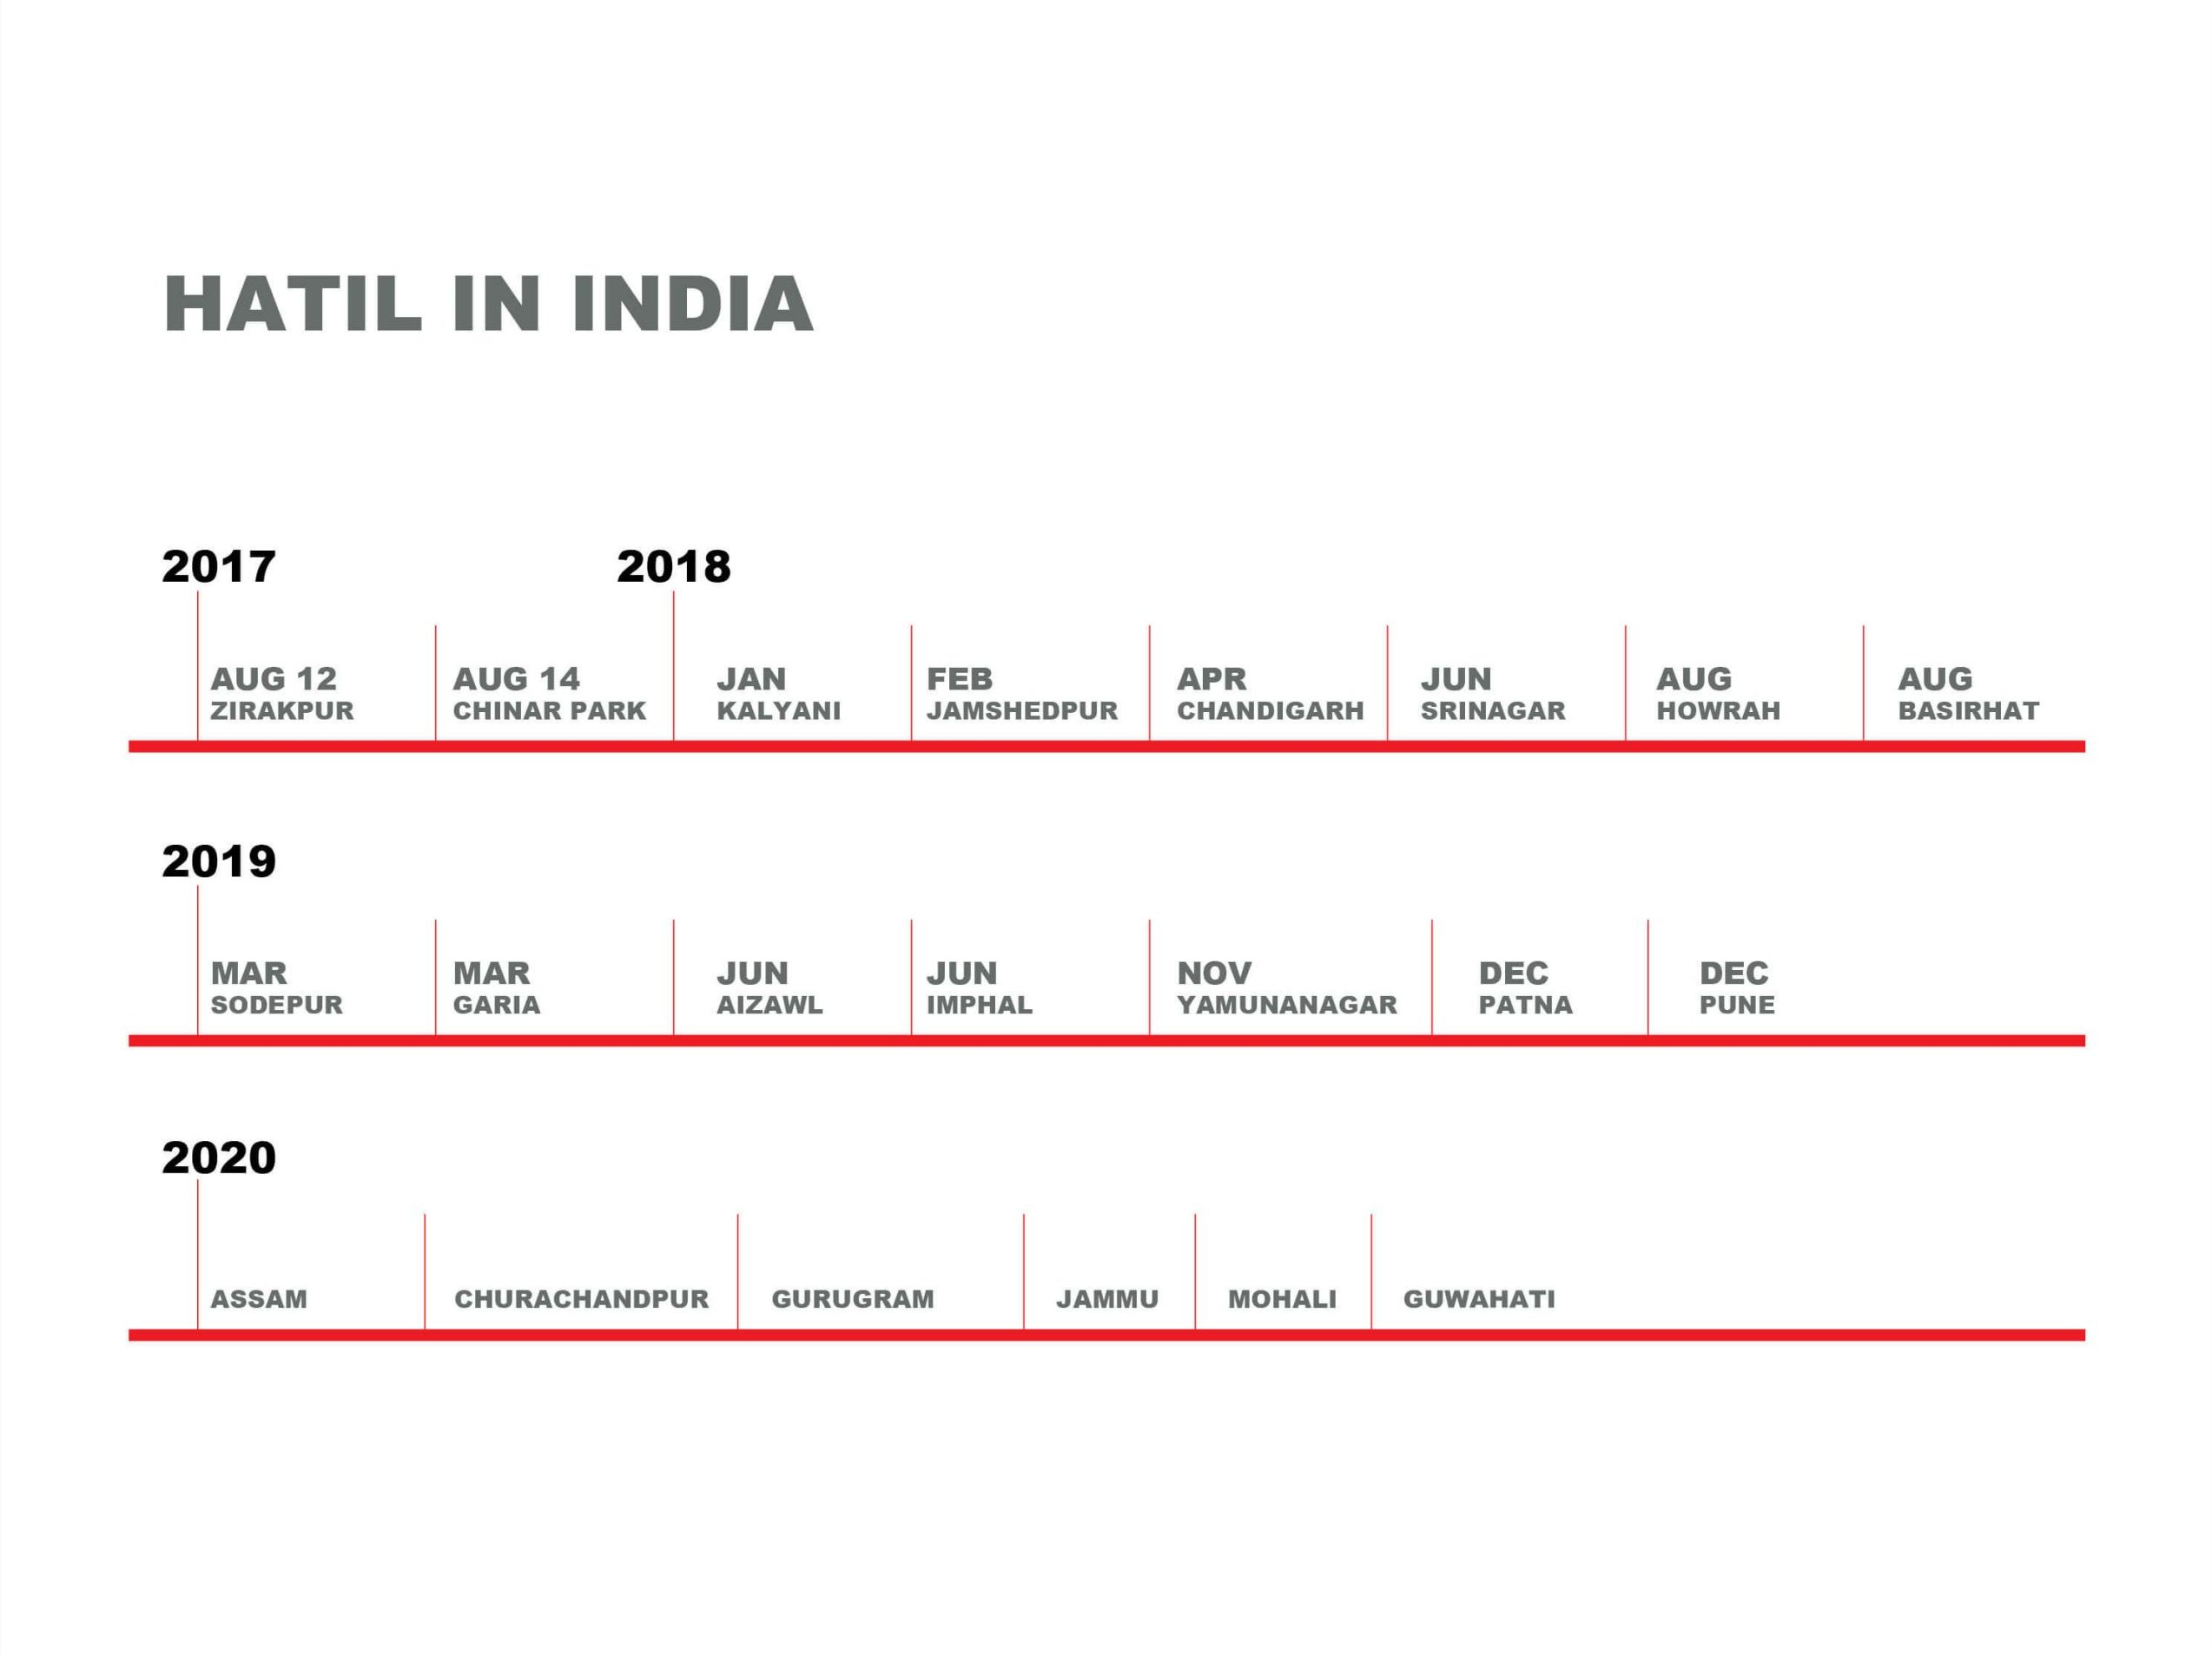 SHOWROOM EXPANSION TIMELINE - HATIL IN INDIA